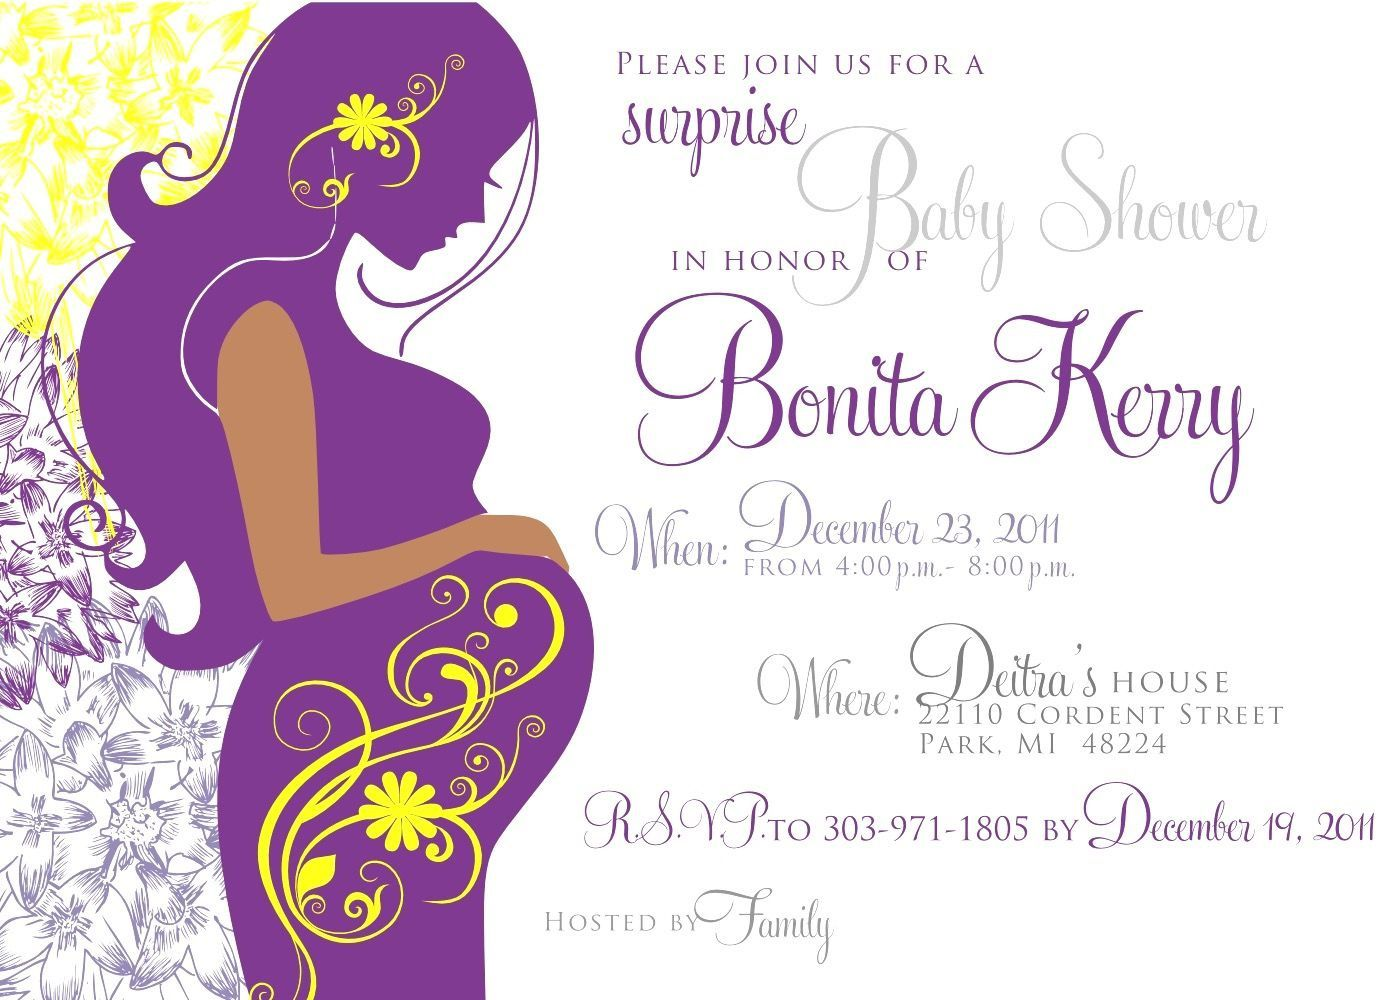 003 Singular Baby Shower Invite Template Word Design  Invitation Wording Sample Free ExampleFull